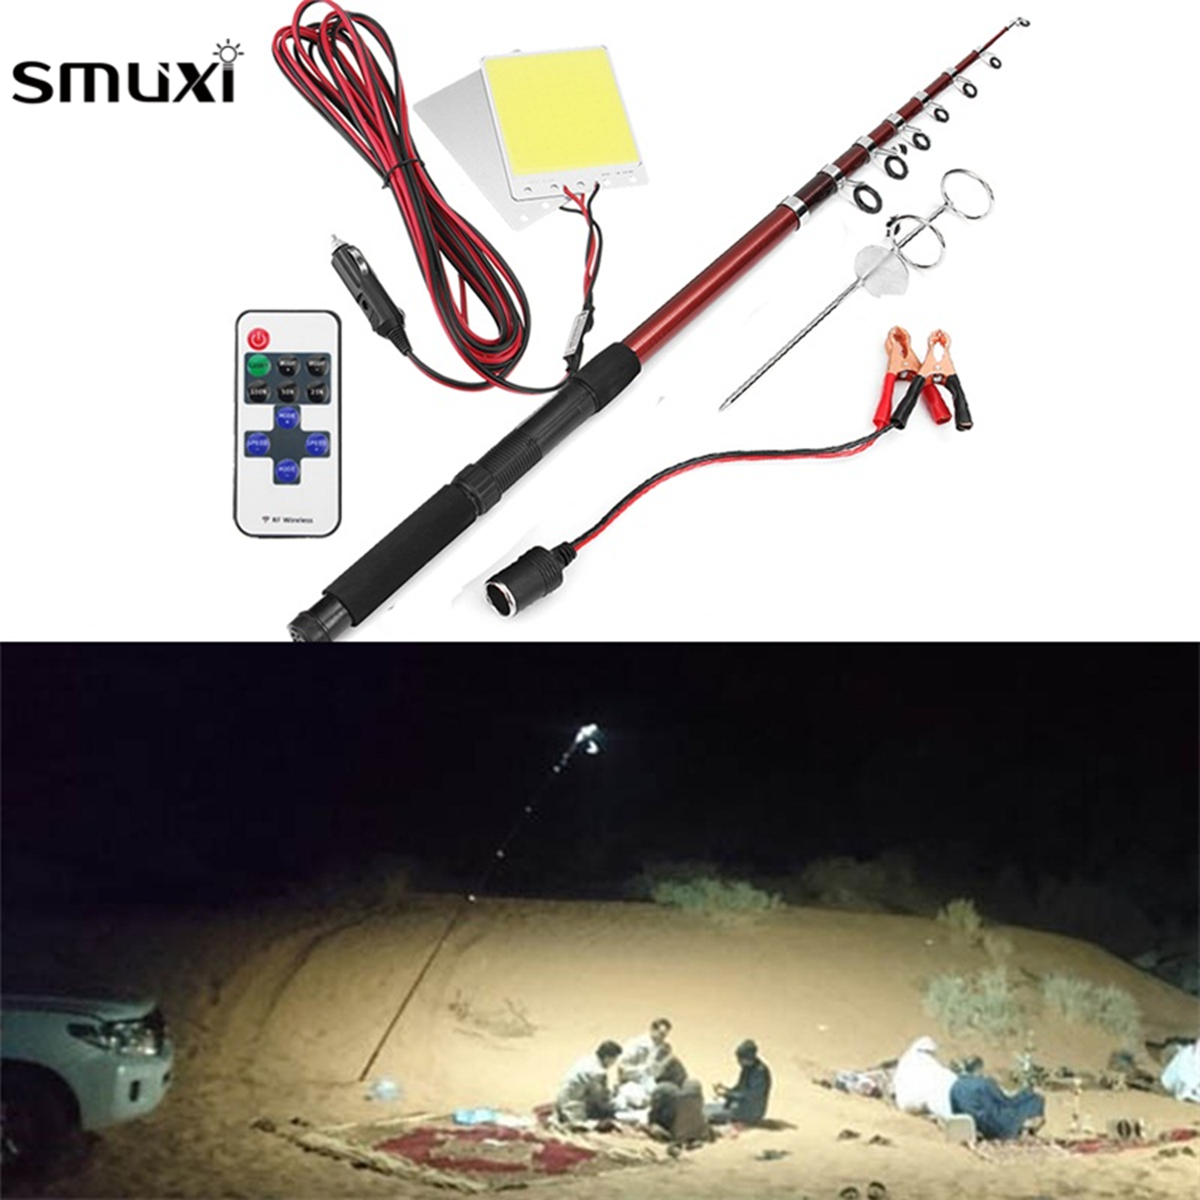 Smuxi 12V 2*96W 3.75 Meters LED Car Rod Light Remote Control Camping Telescopic Outdoor Fishing Lamp LightSmuxi 12V 2*96W 3.75 Meters LED Car Rod Light Remote Control Camping Telescopic Outdoor Fishing Lamp Light